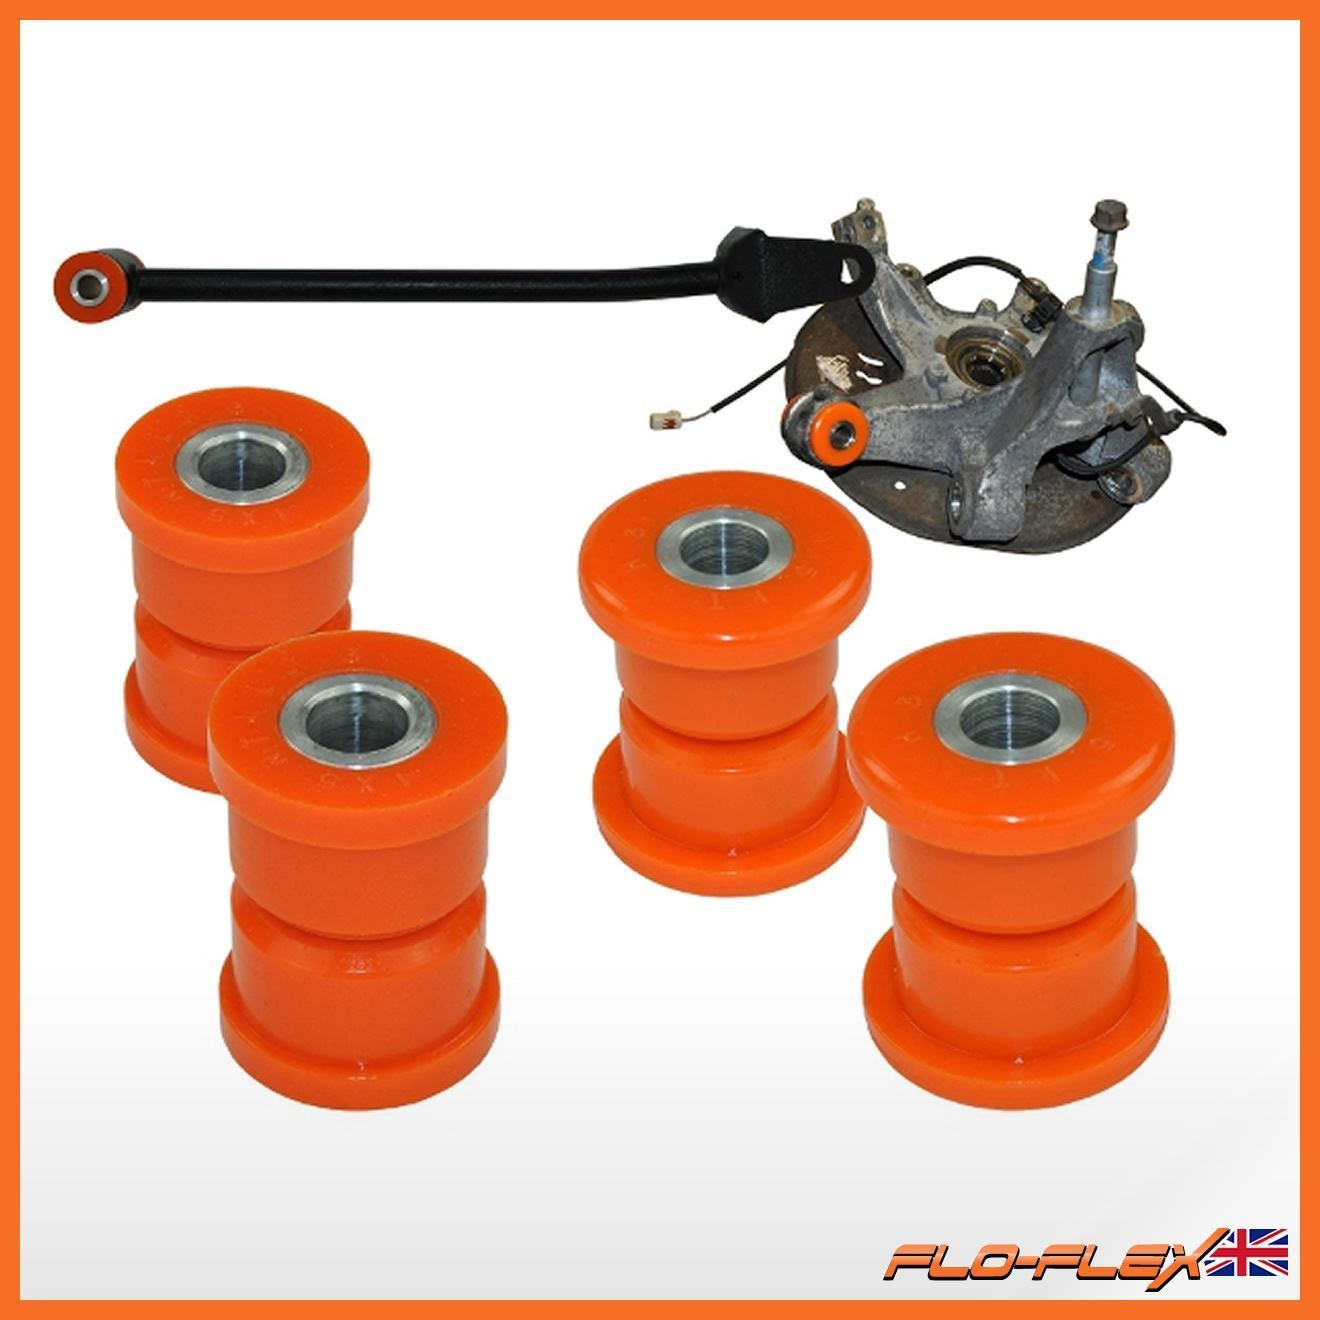 Land Rover Link Trailing Rear S Partnumber: Mazda MX5 MK3 NC Rear Trailing Link Lower Arm Bushes